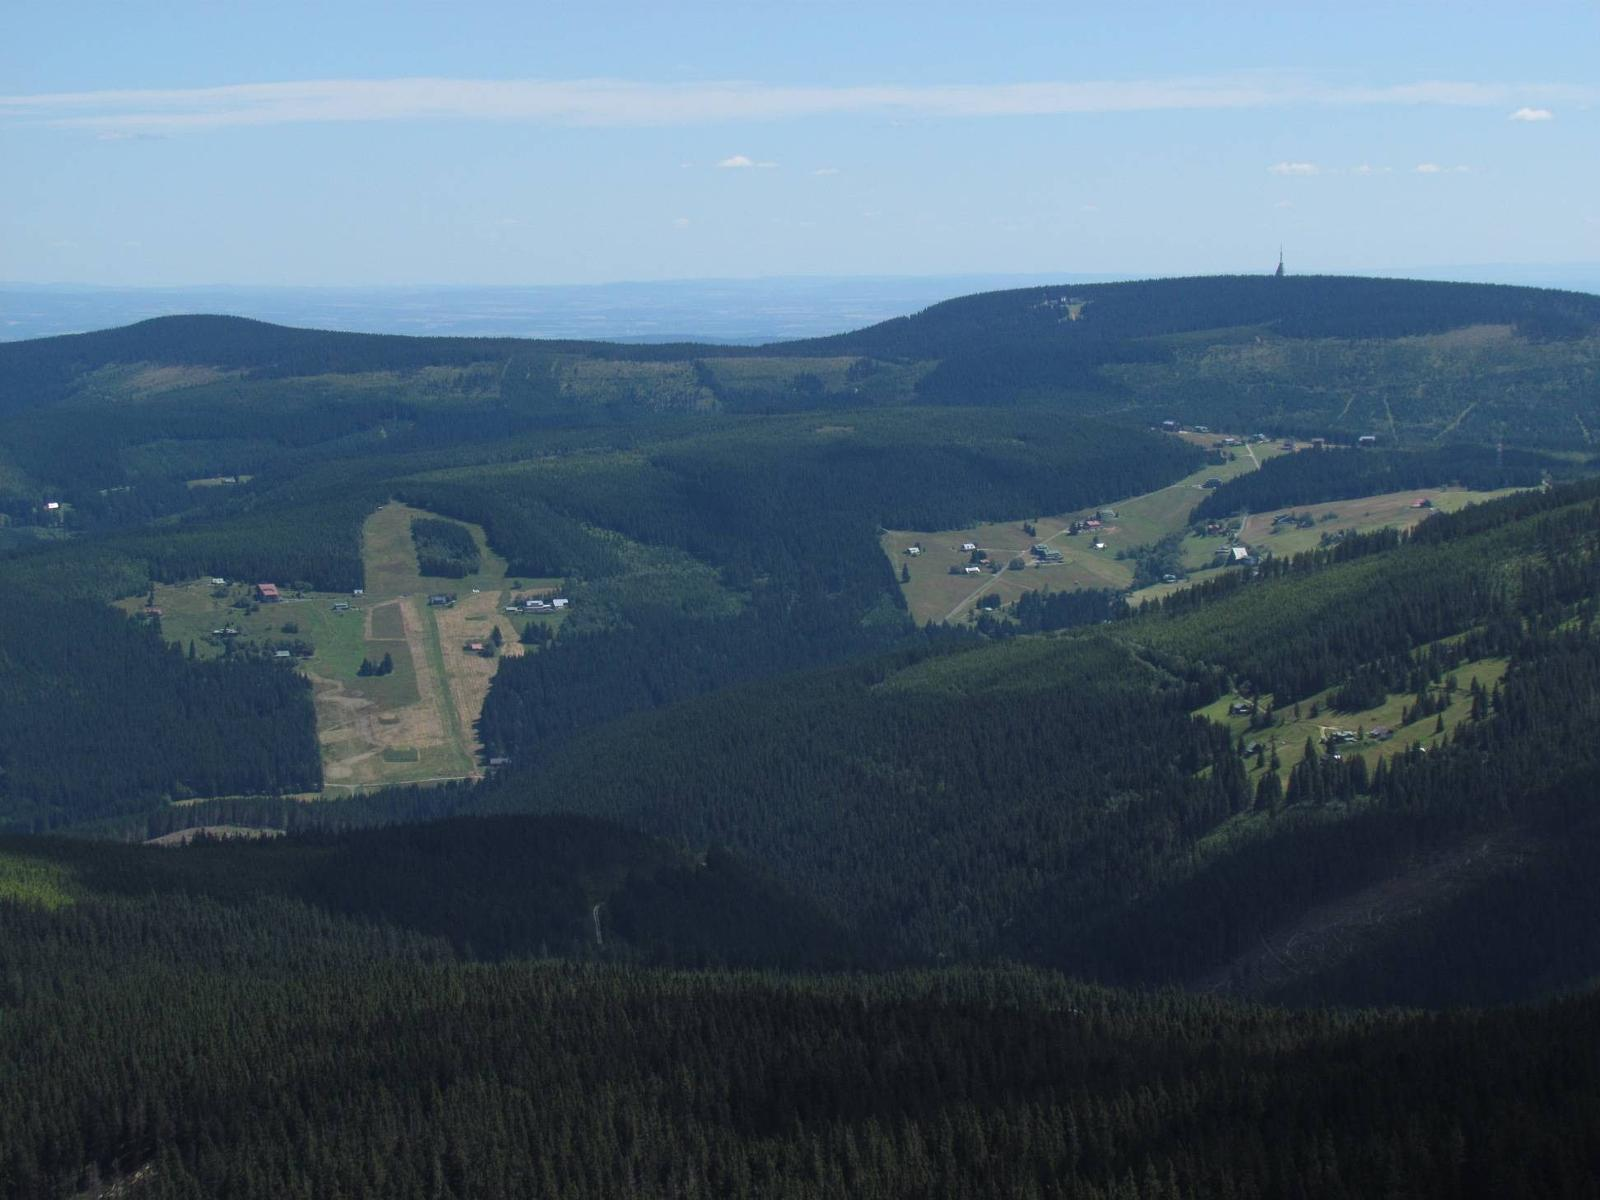 Фото Krkonose - from Pec pod Snezkou through Bufet to Lucni bouda and back to Pec- July 21 2013